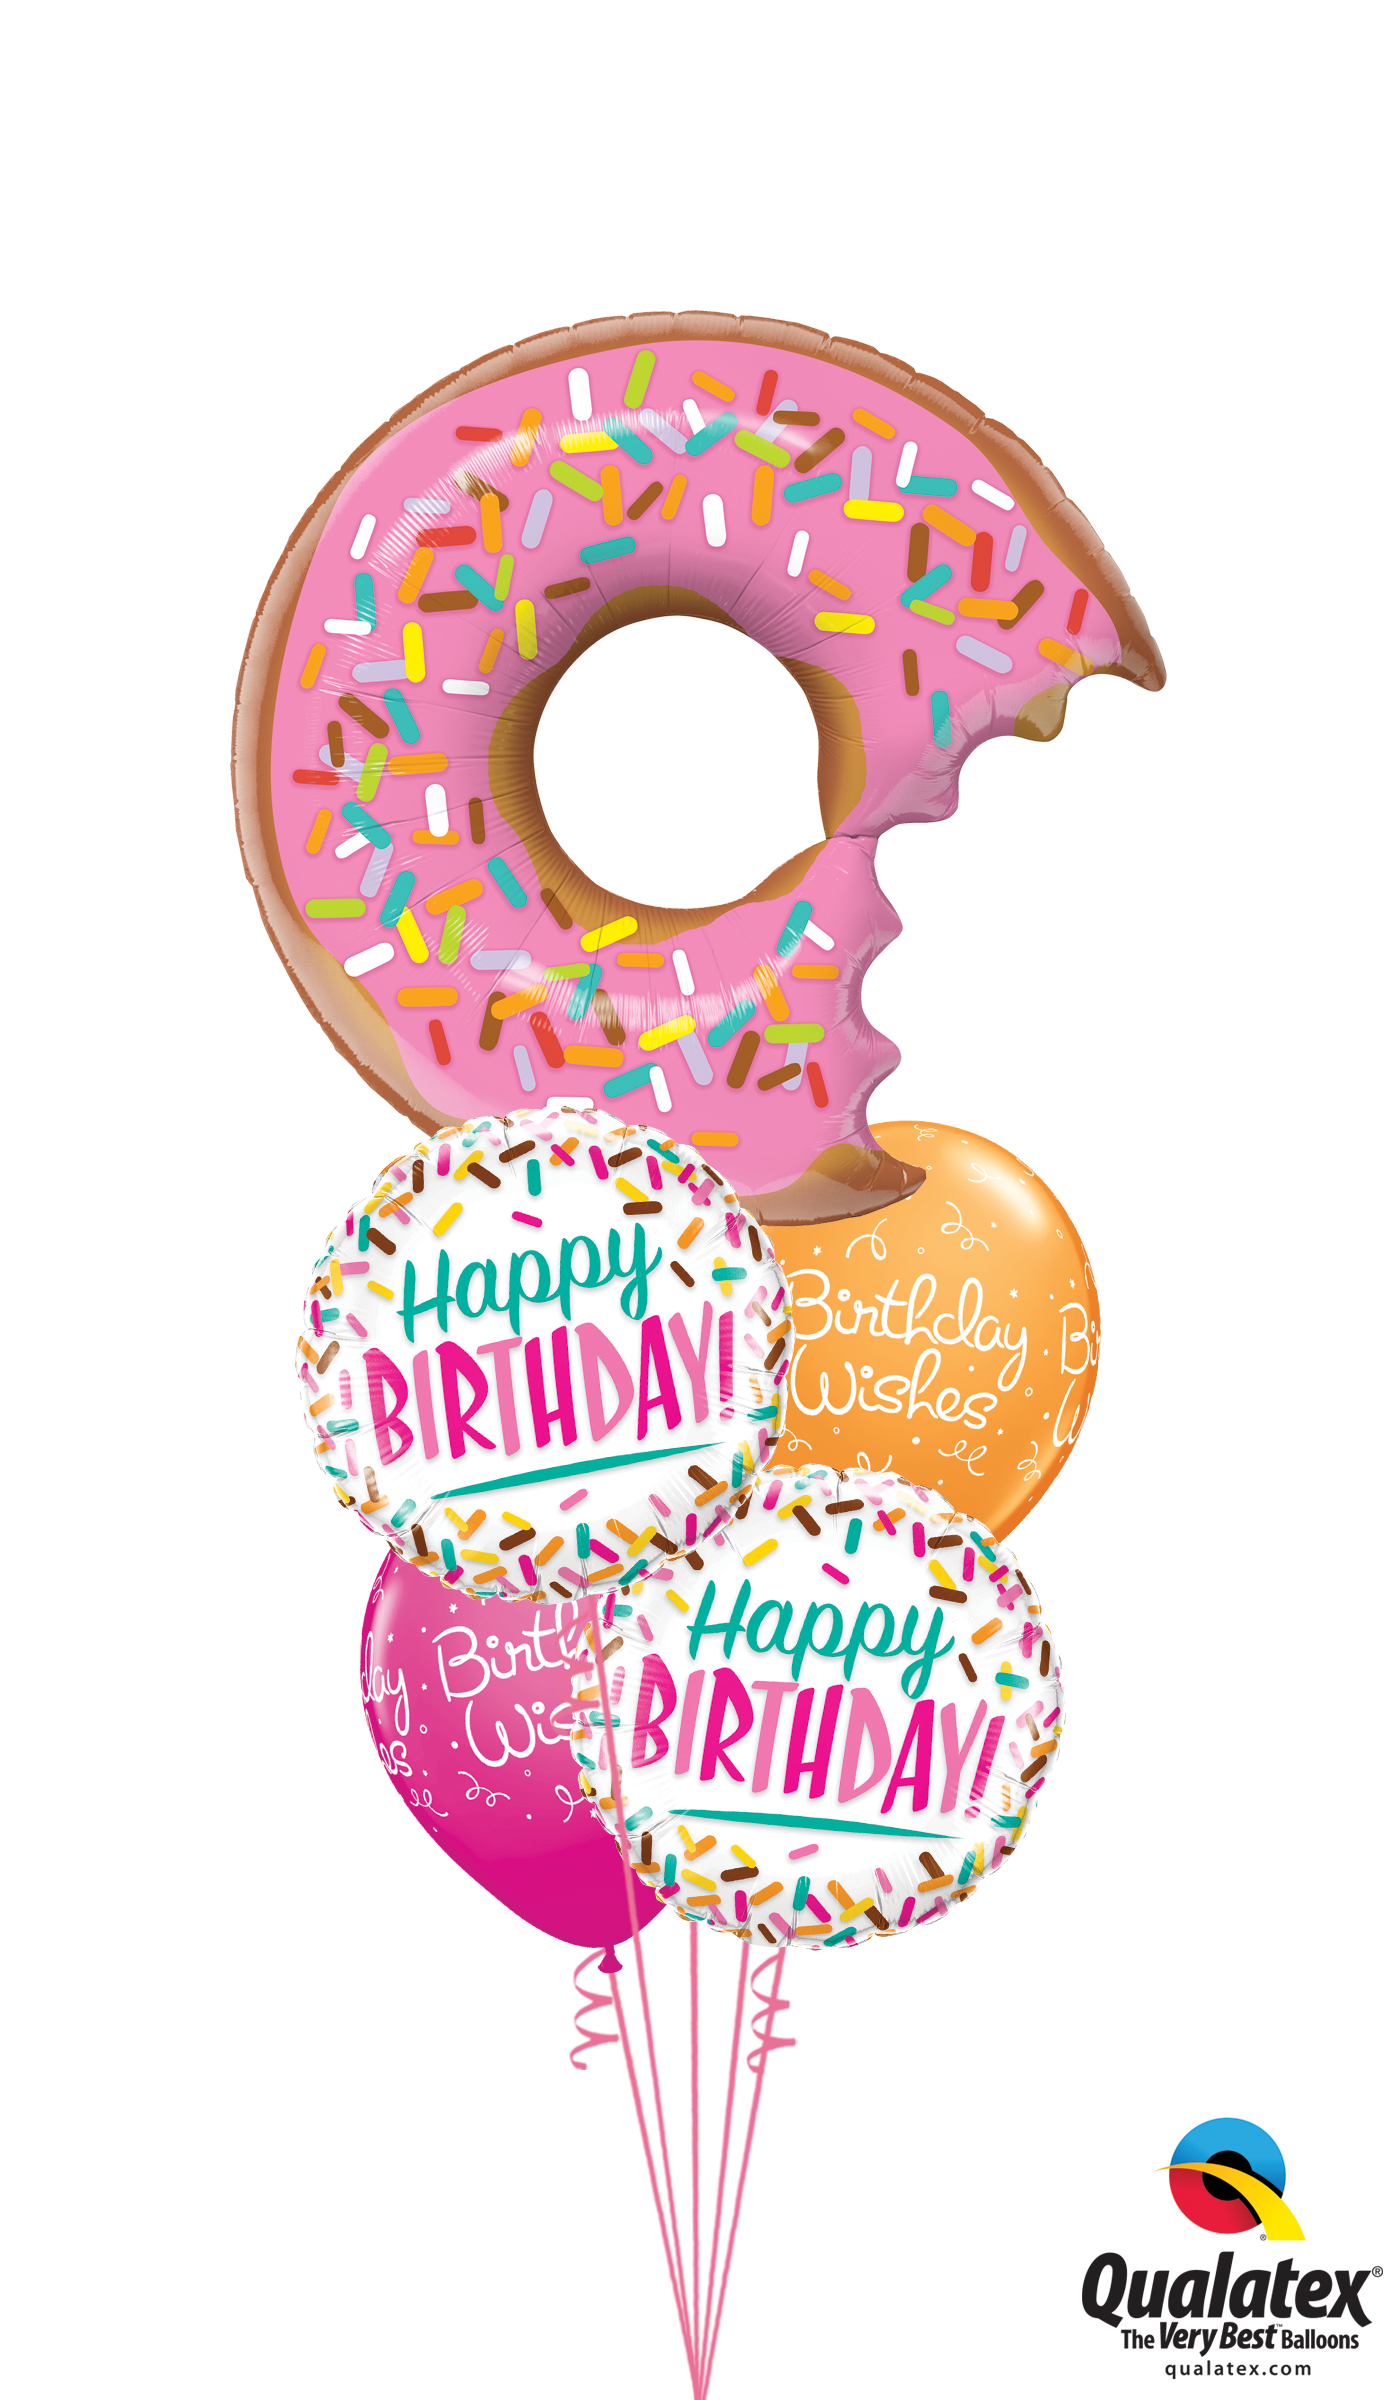 Doughnut clipart birthday. Classic donut balloon bouquet